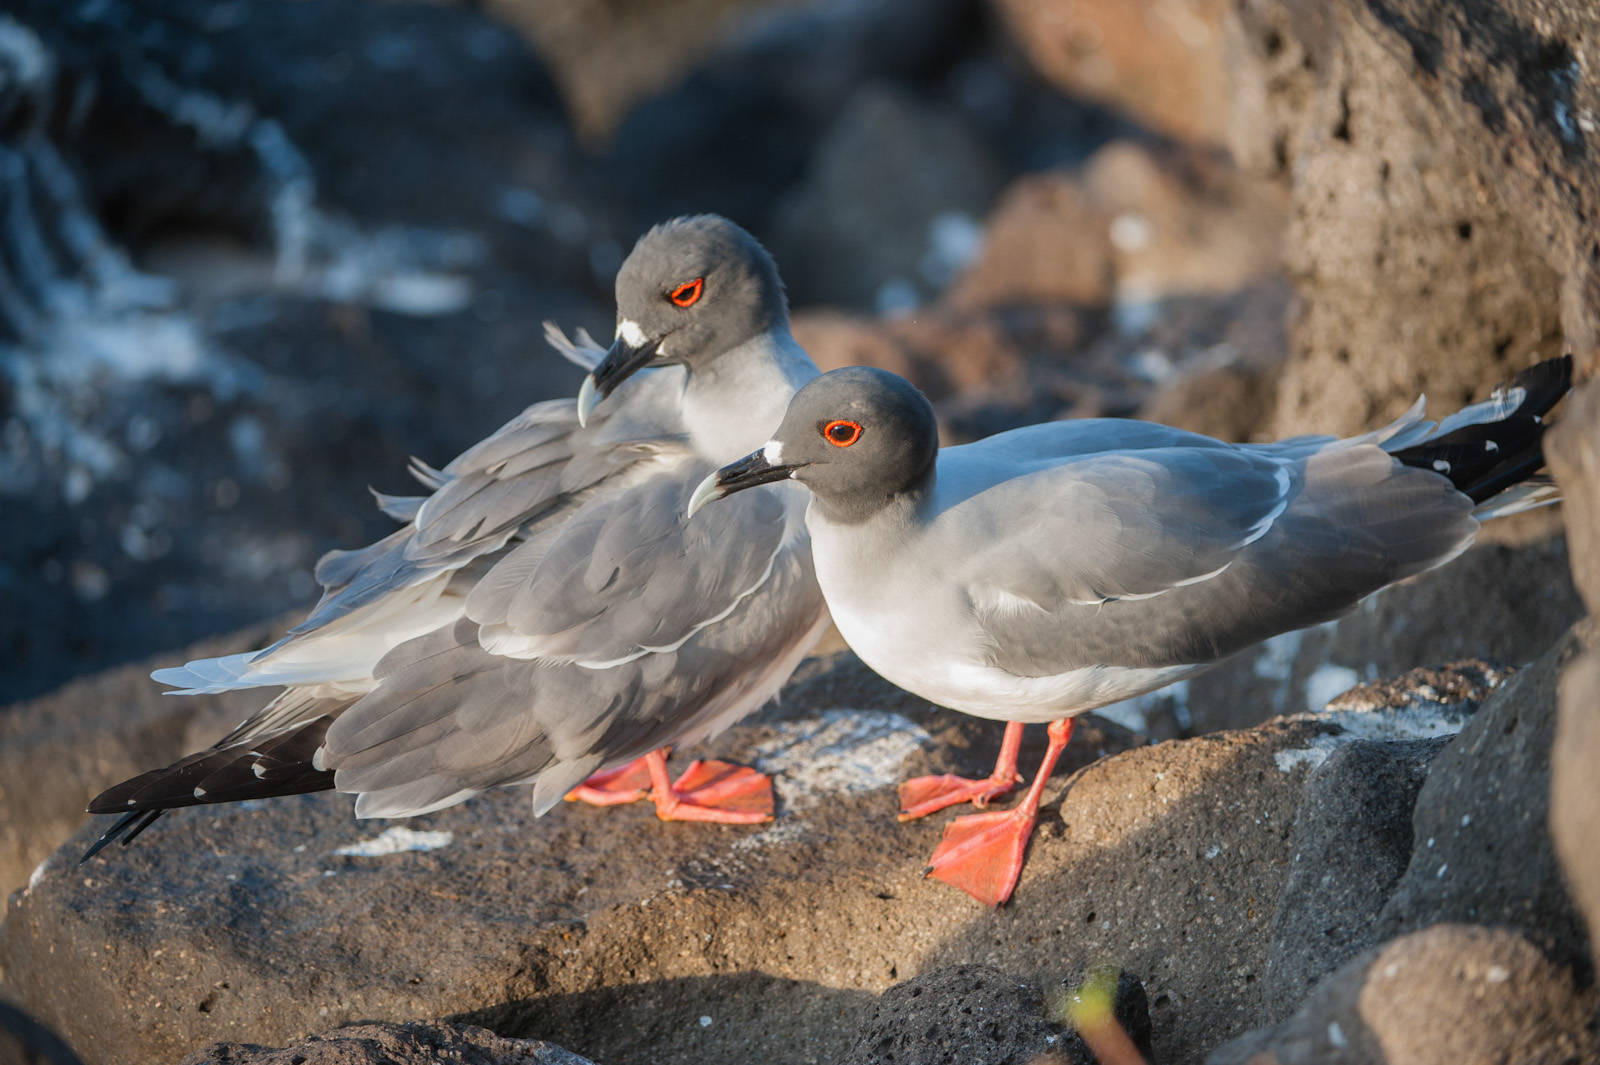 Photo: Swallow-tailed gulls (Creagrus furcatus) on North Seymour Island, part of the Galapagos Chain.